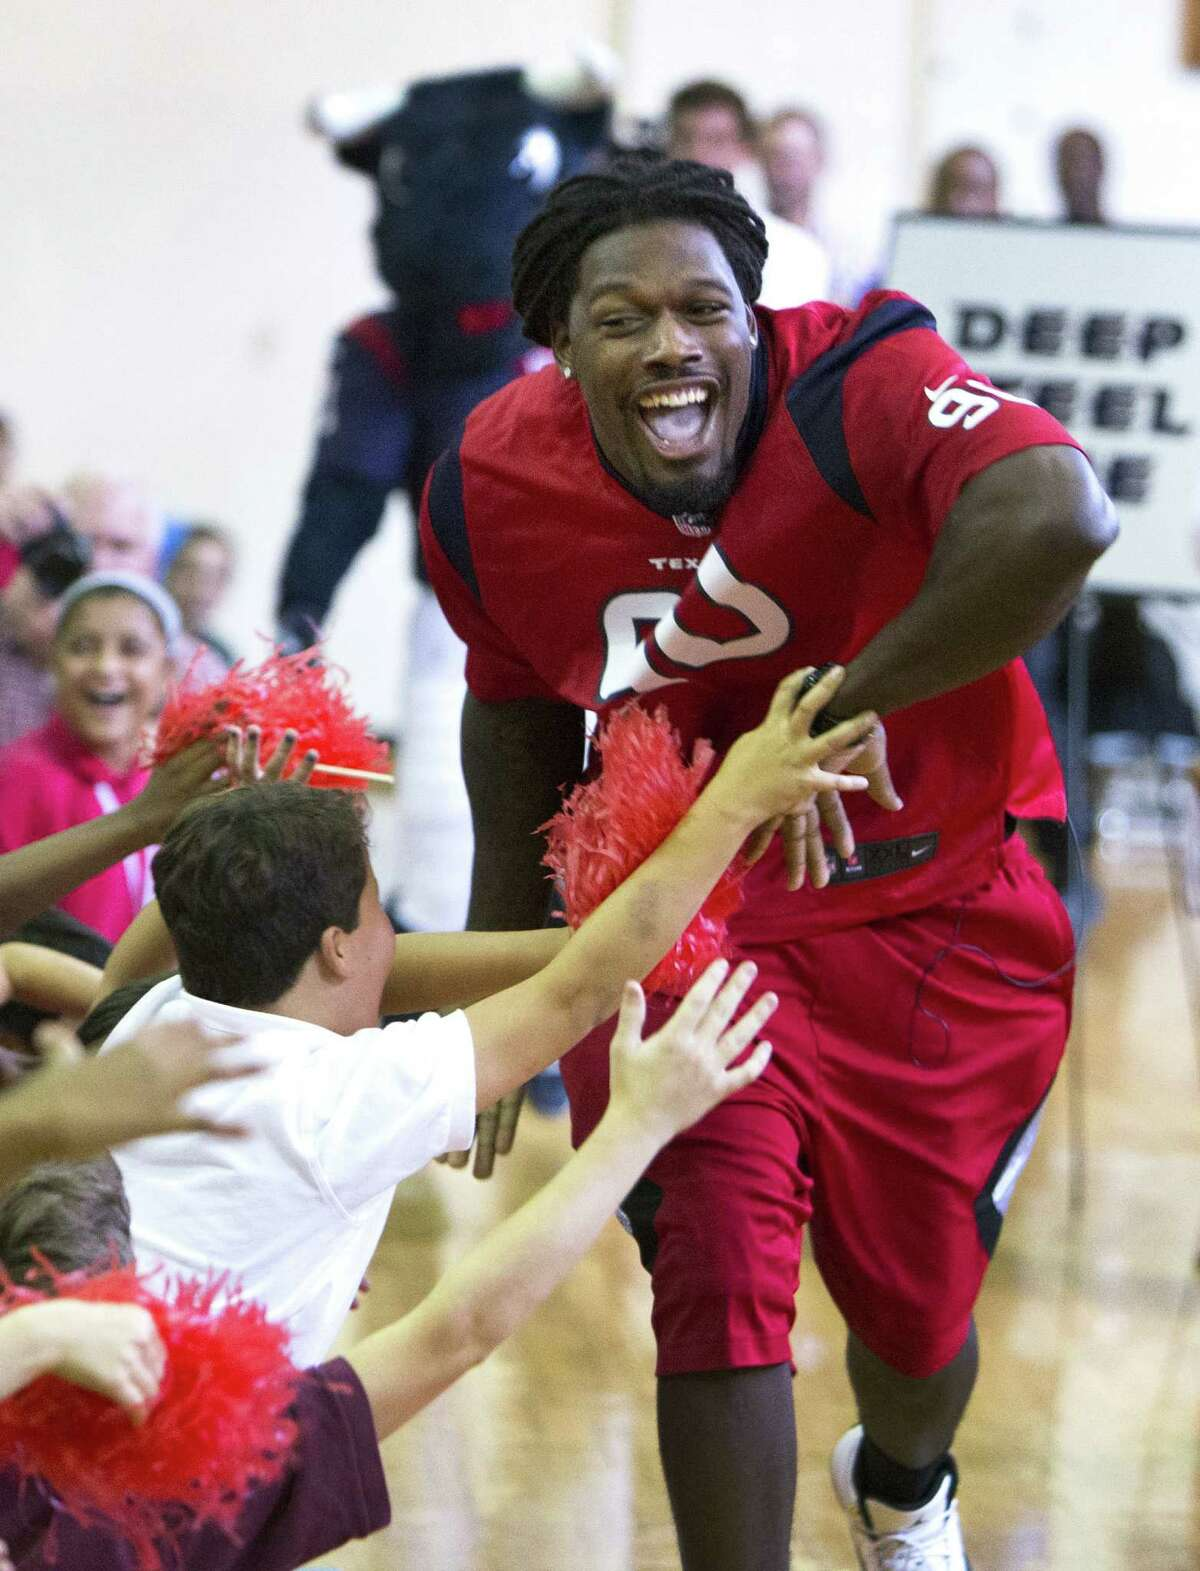 Texans linebacker Jadeveon Clowney slaps hands with students at Lanier Middle School in Houston on Tuesday.